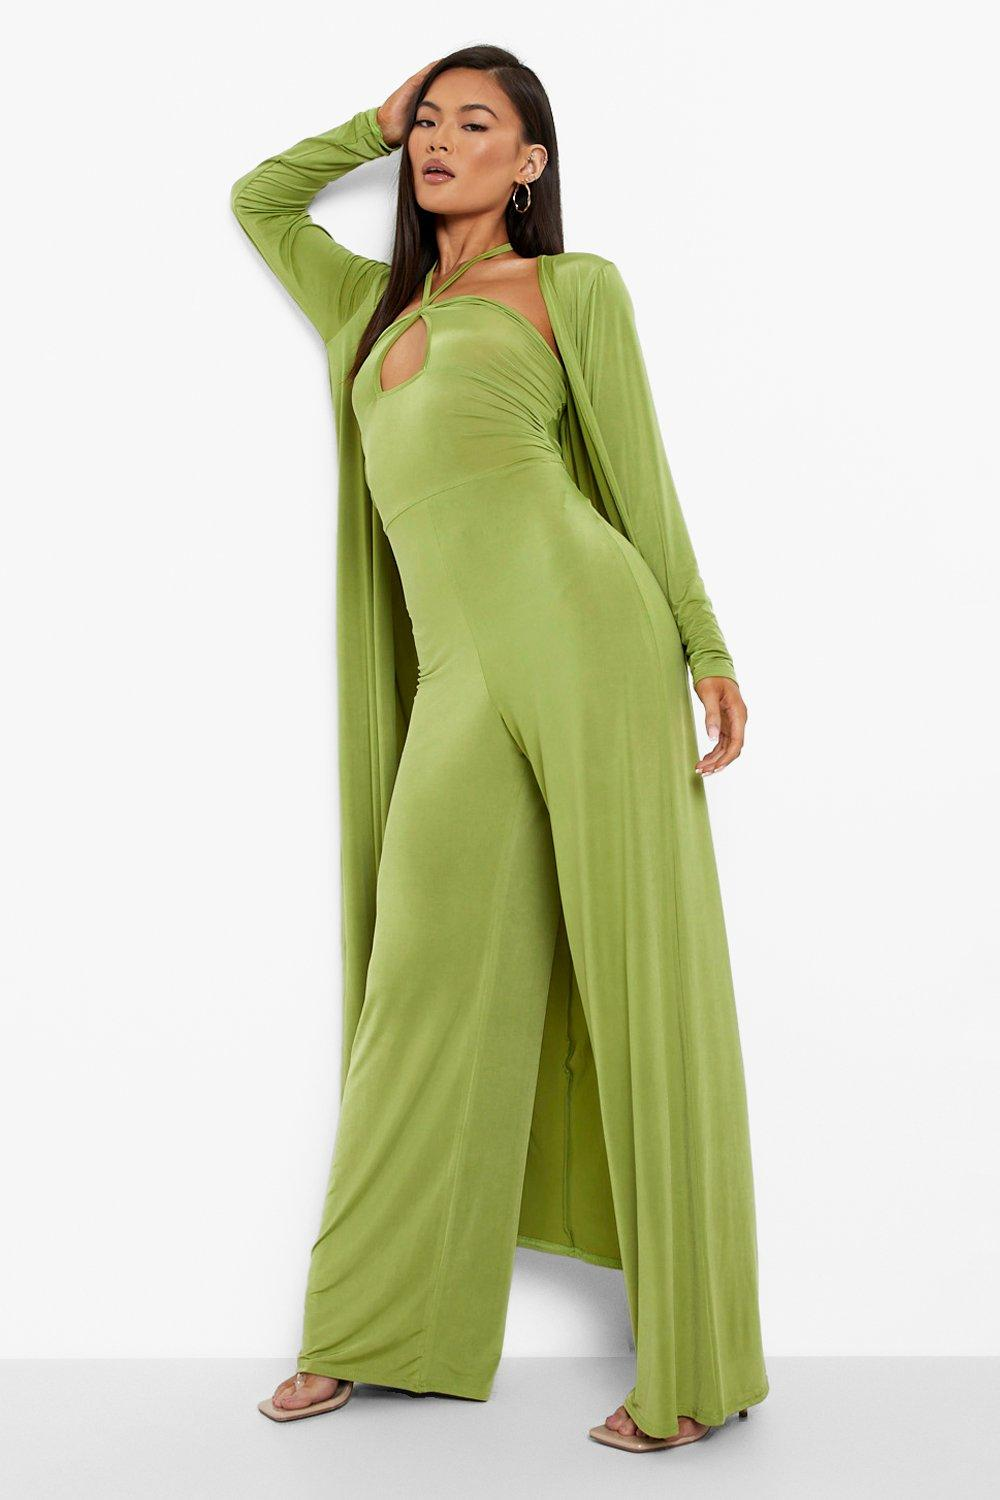 70s Clothes | Hippie Clothes & Outfits Womens Halter Ruched Waist Jumpsuit  Duster Set - Green - 12 $70.00 AT vintagedancer.com